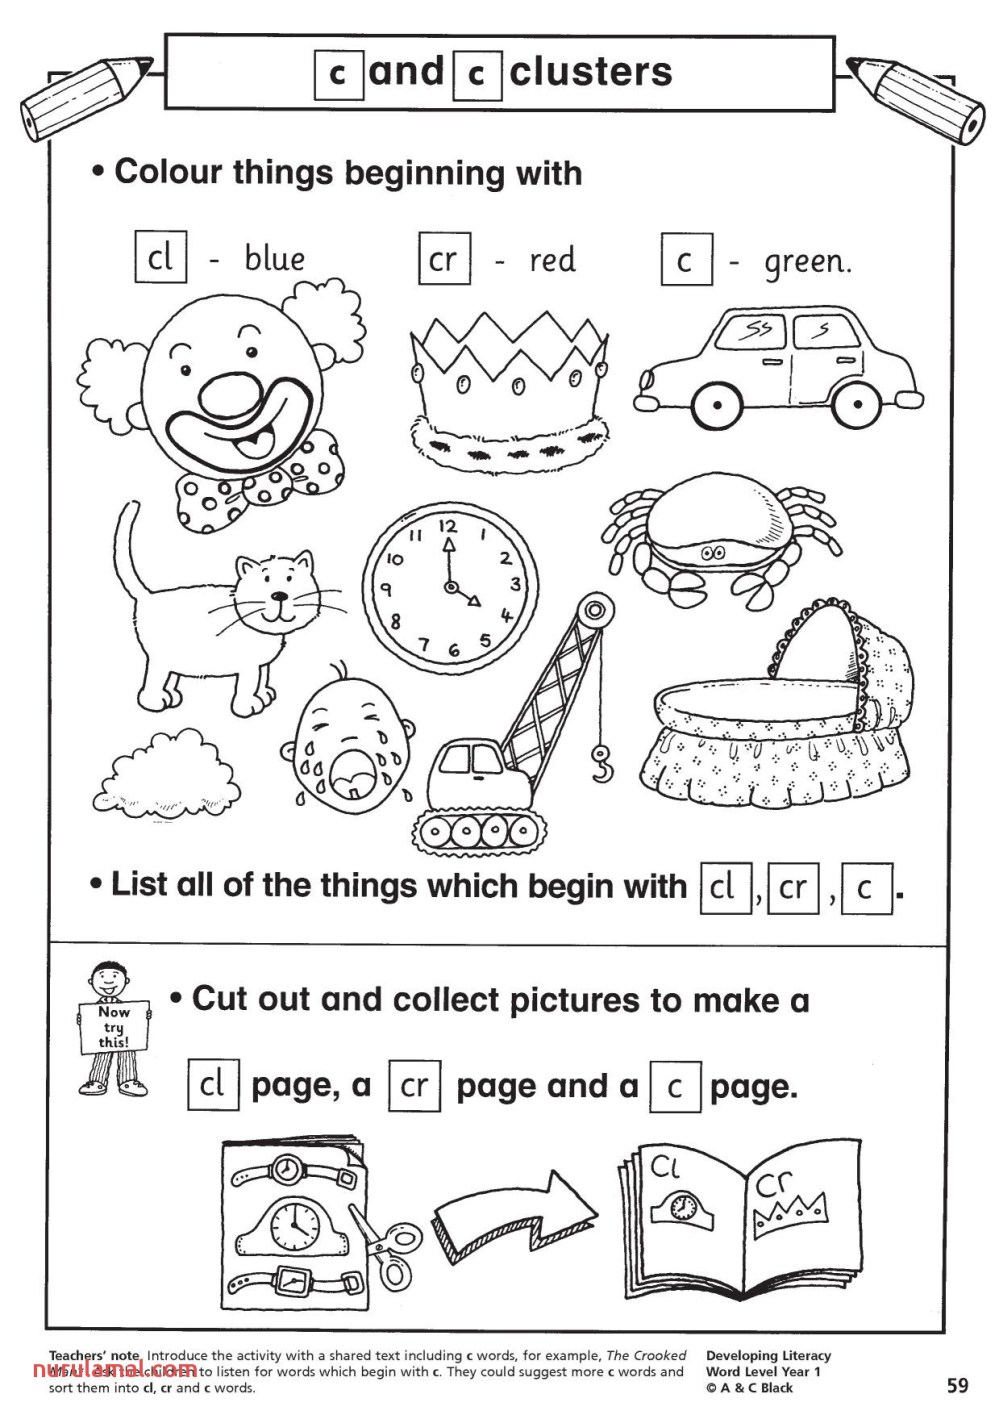 medium resolution of Hearing Sounds Worksheet For Grade 1   Printable Worksheets and Activities  for Teachers